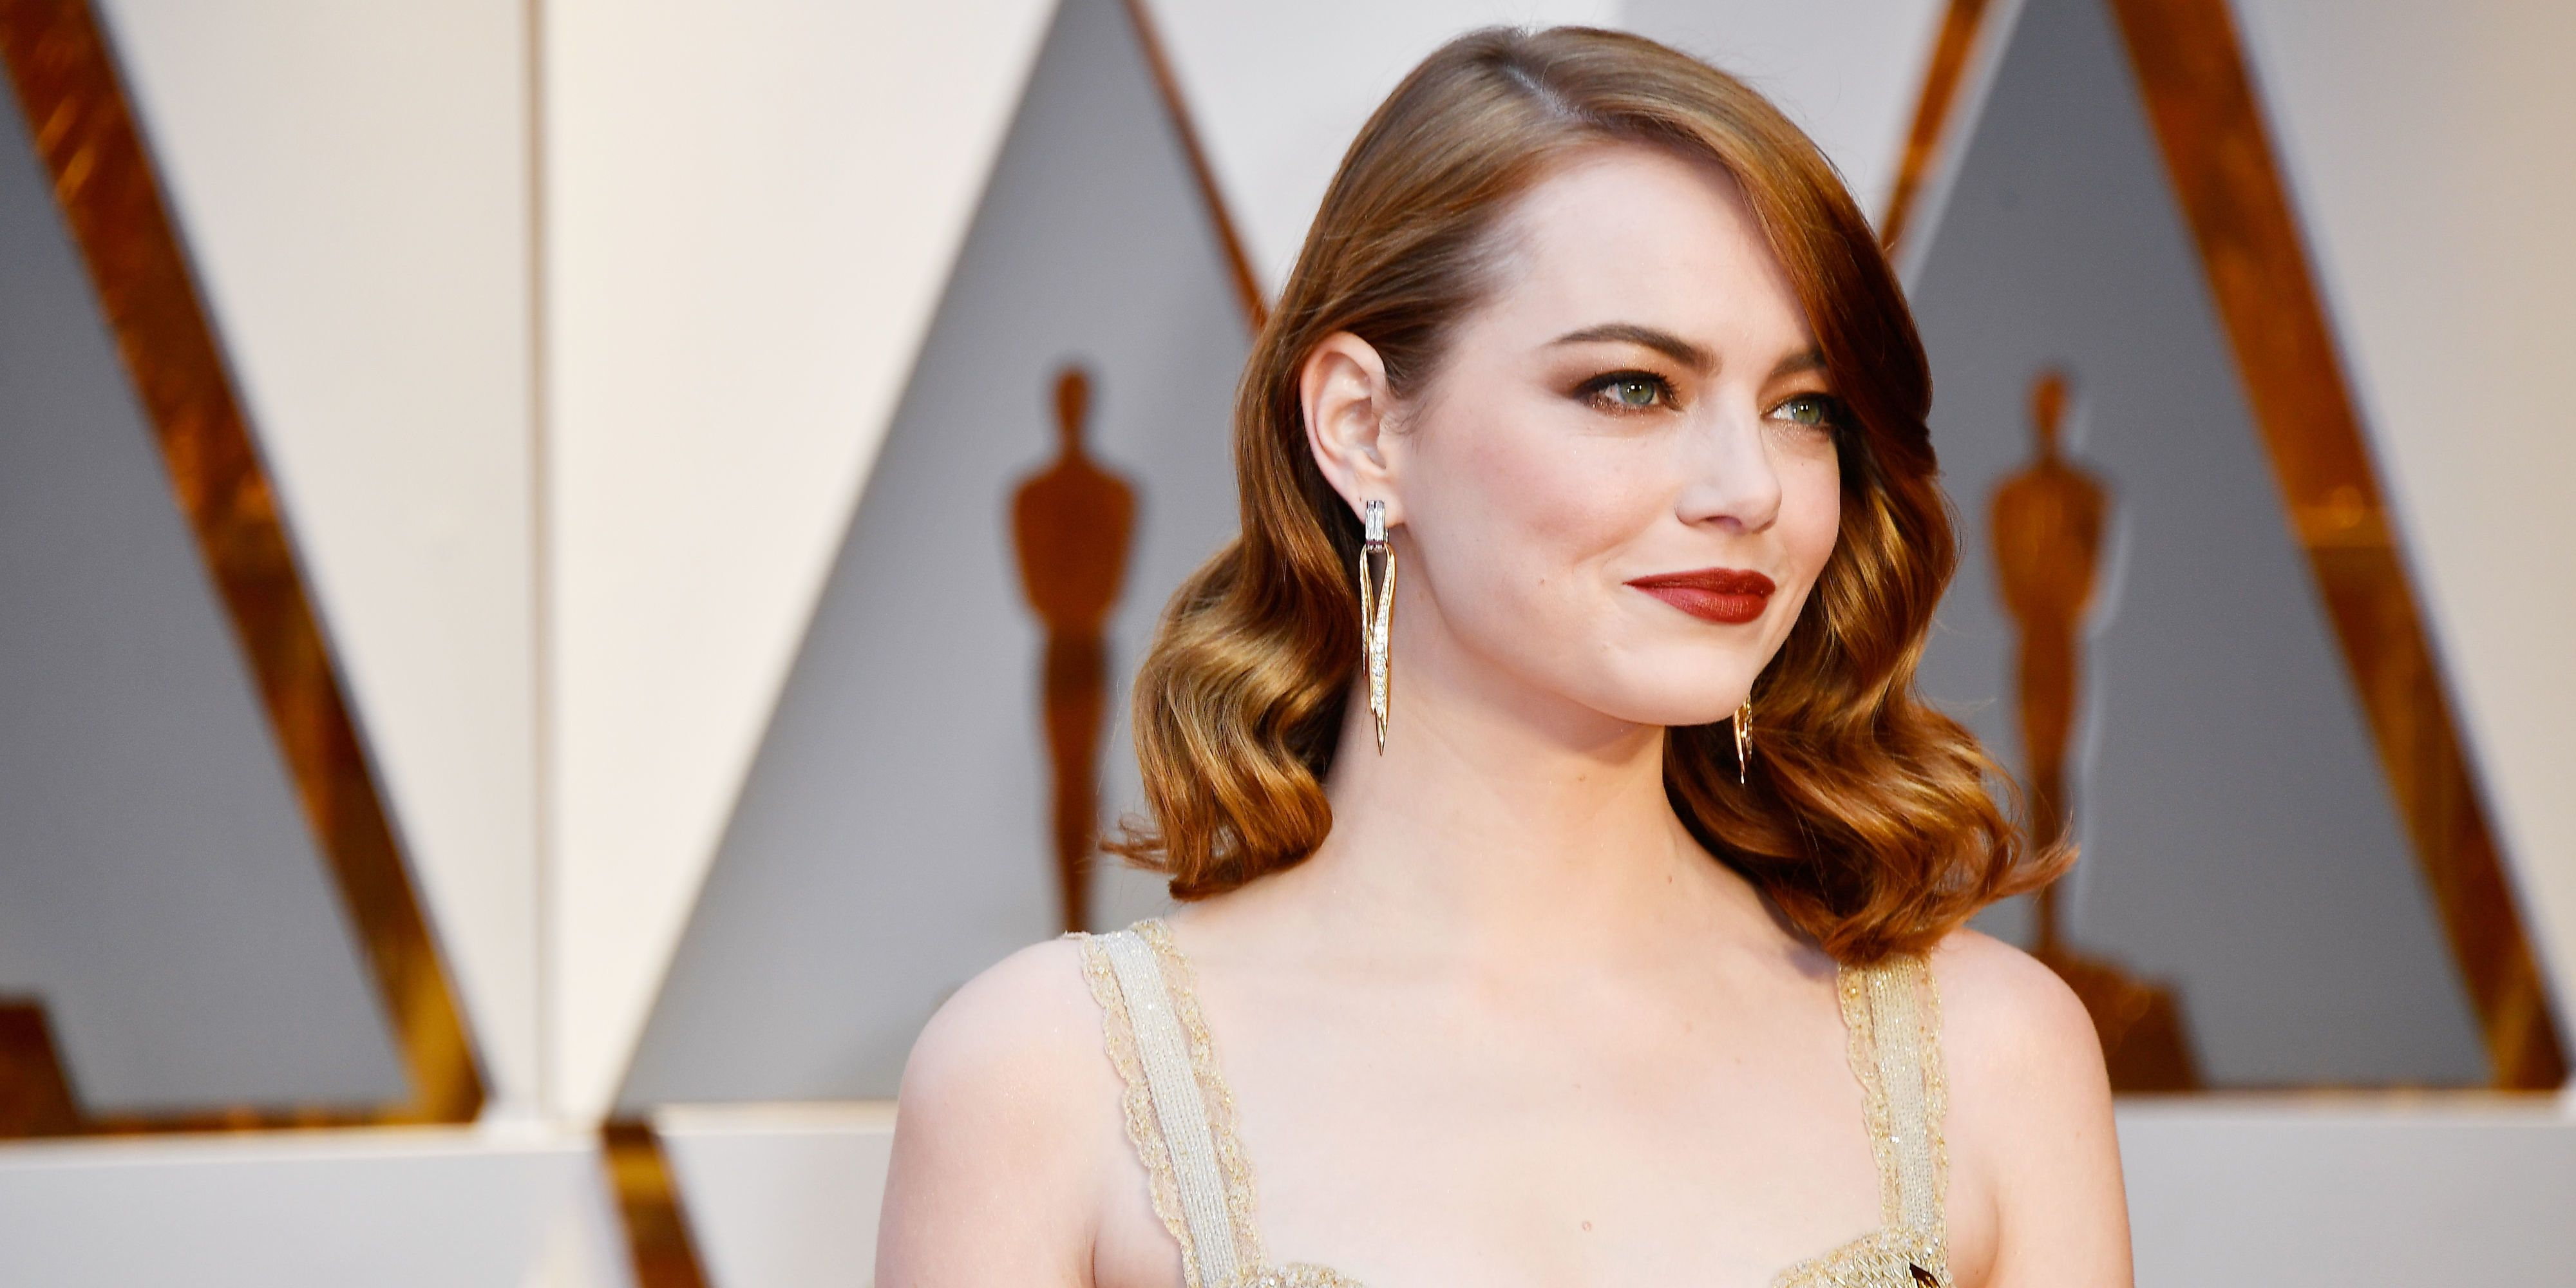 Photo of Why Emma Stone Is An Inspiration For Working Women?